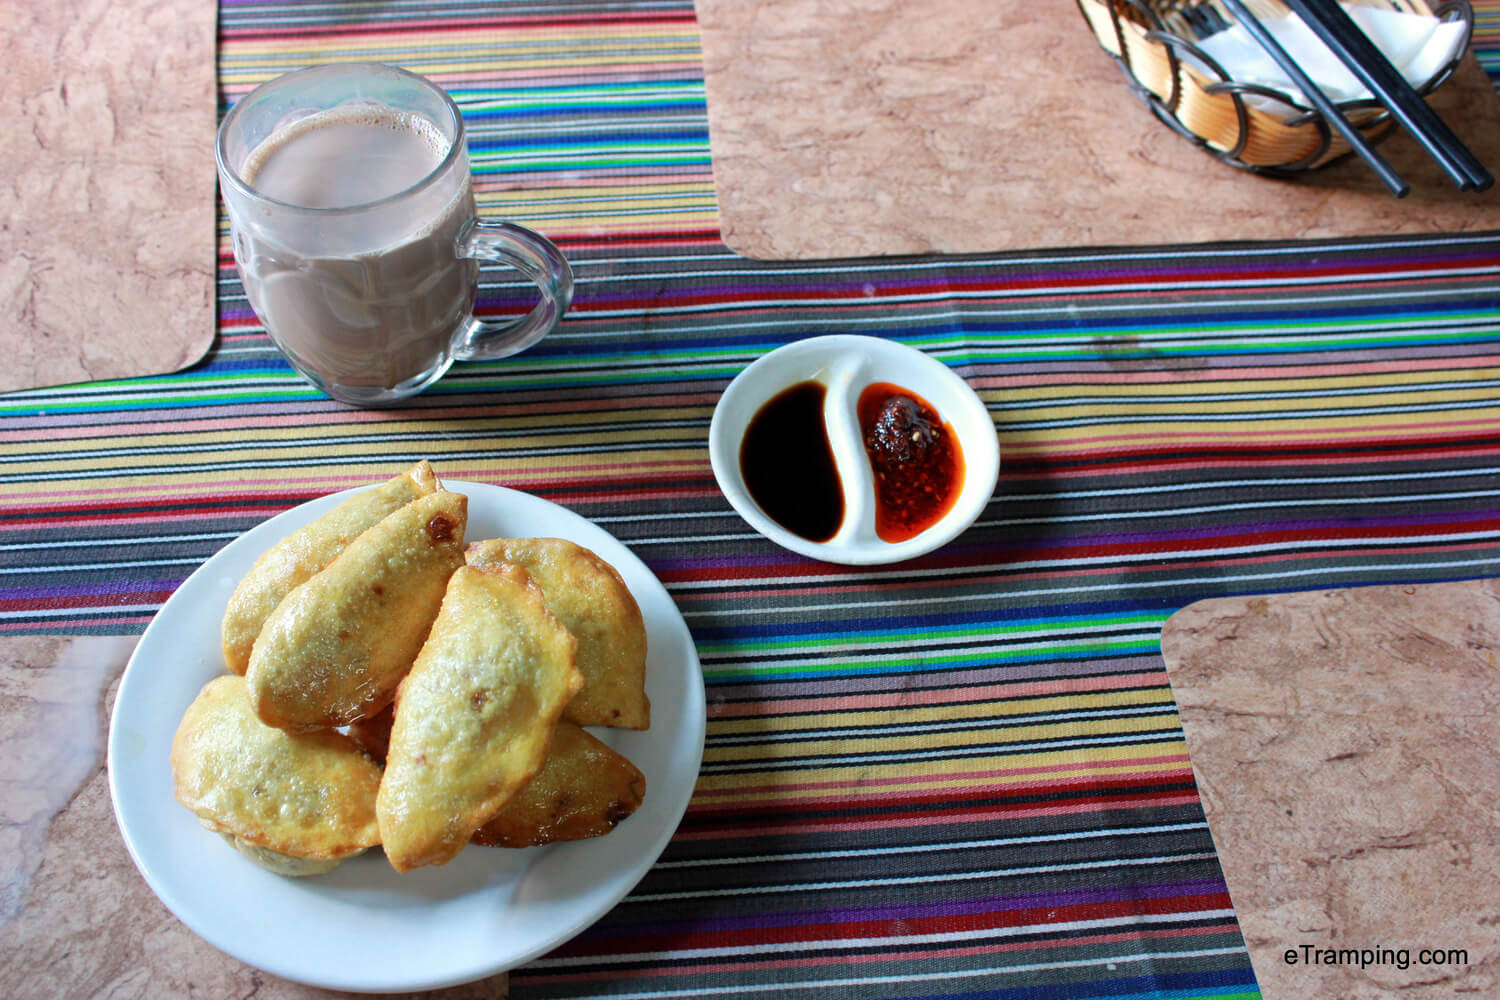 Fried momos with hot chocolate